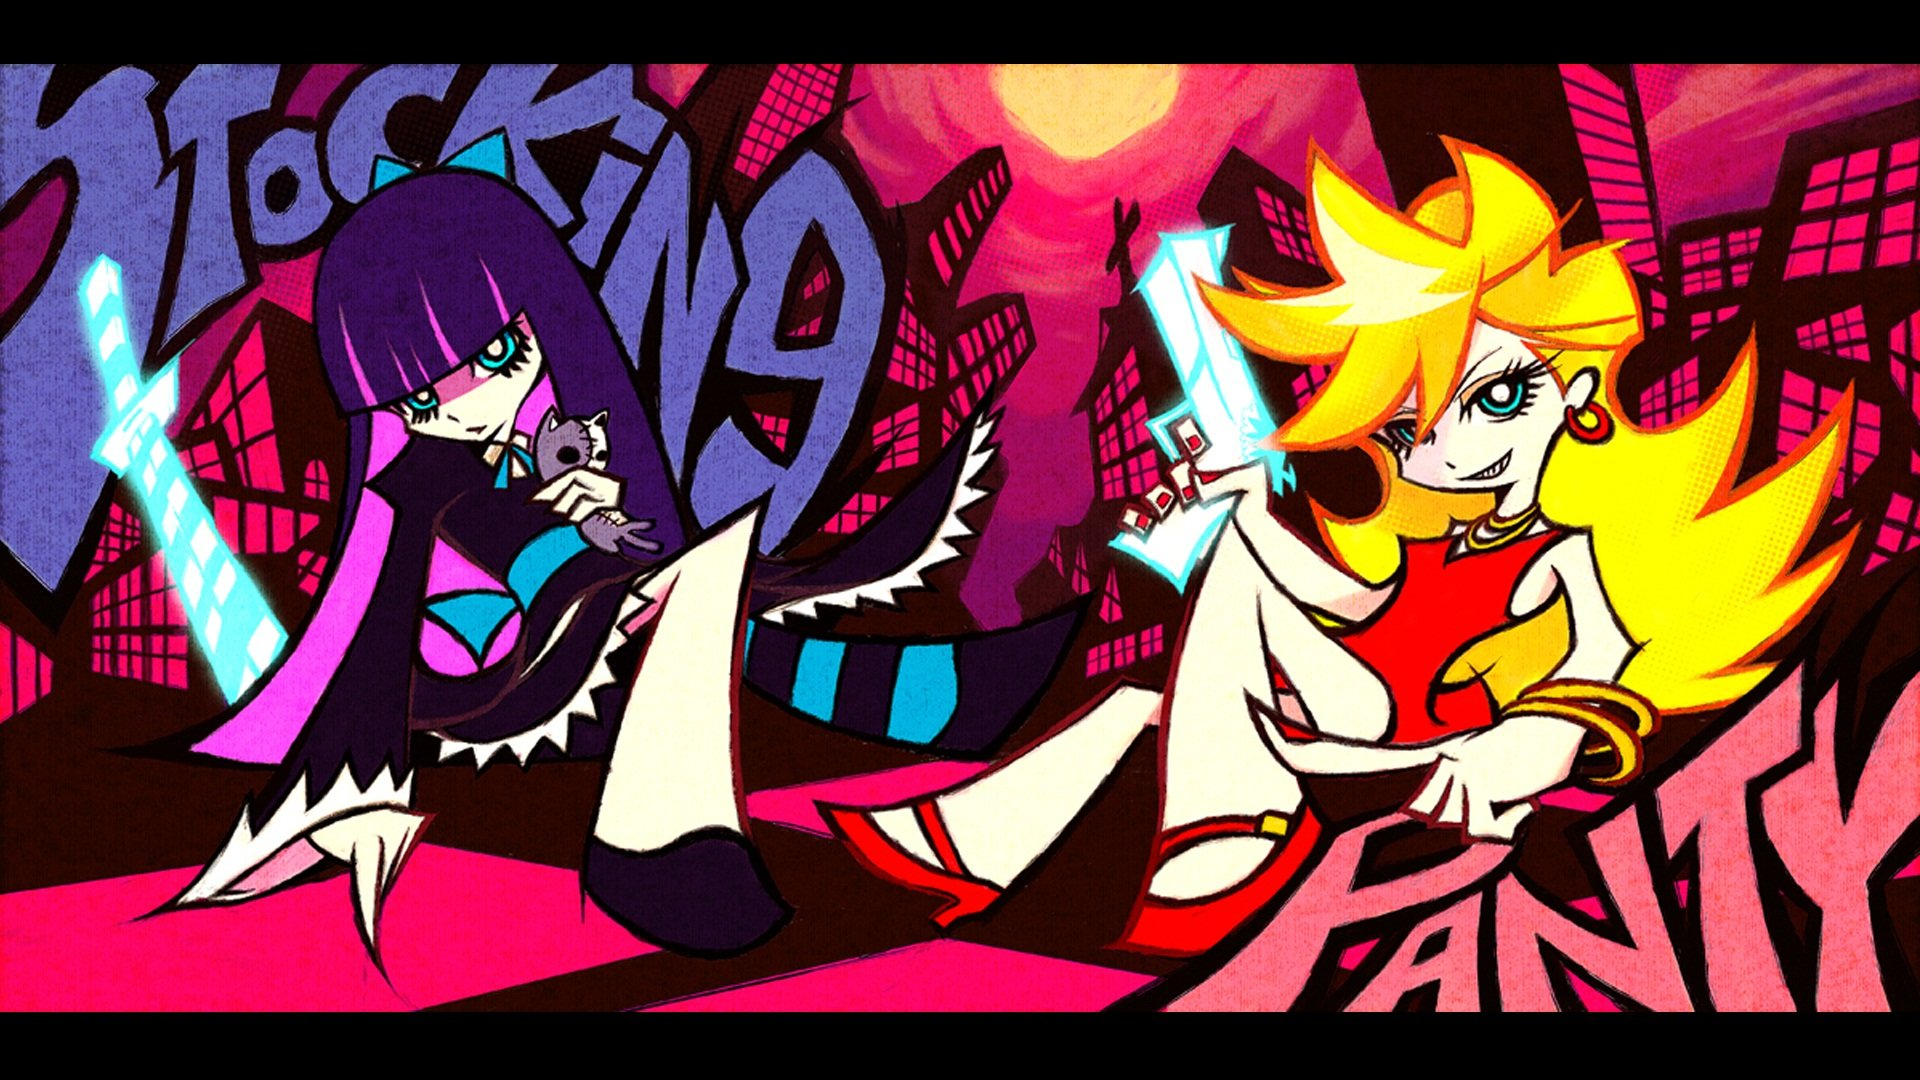 Awesome Panty and Stocking With Garterbelt free wallpaper ID:185119 for hd 1920x1080 desktop